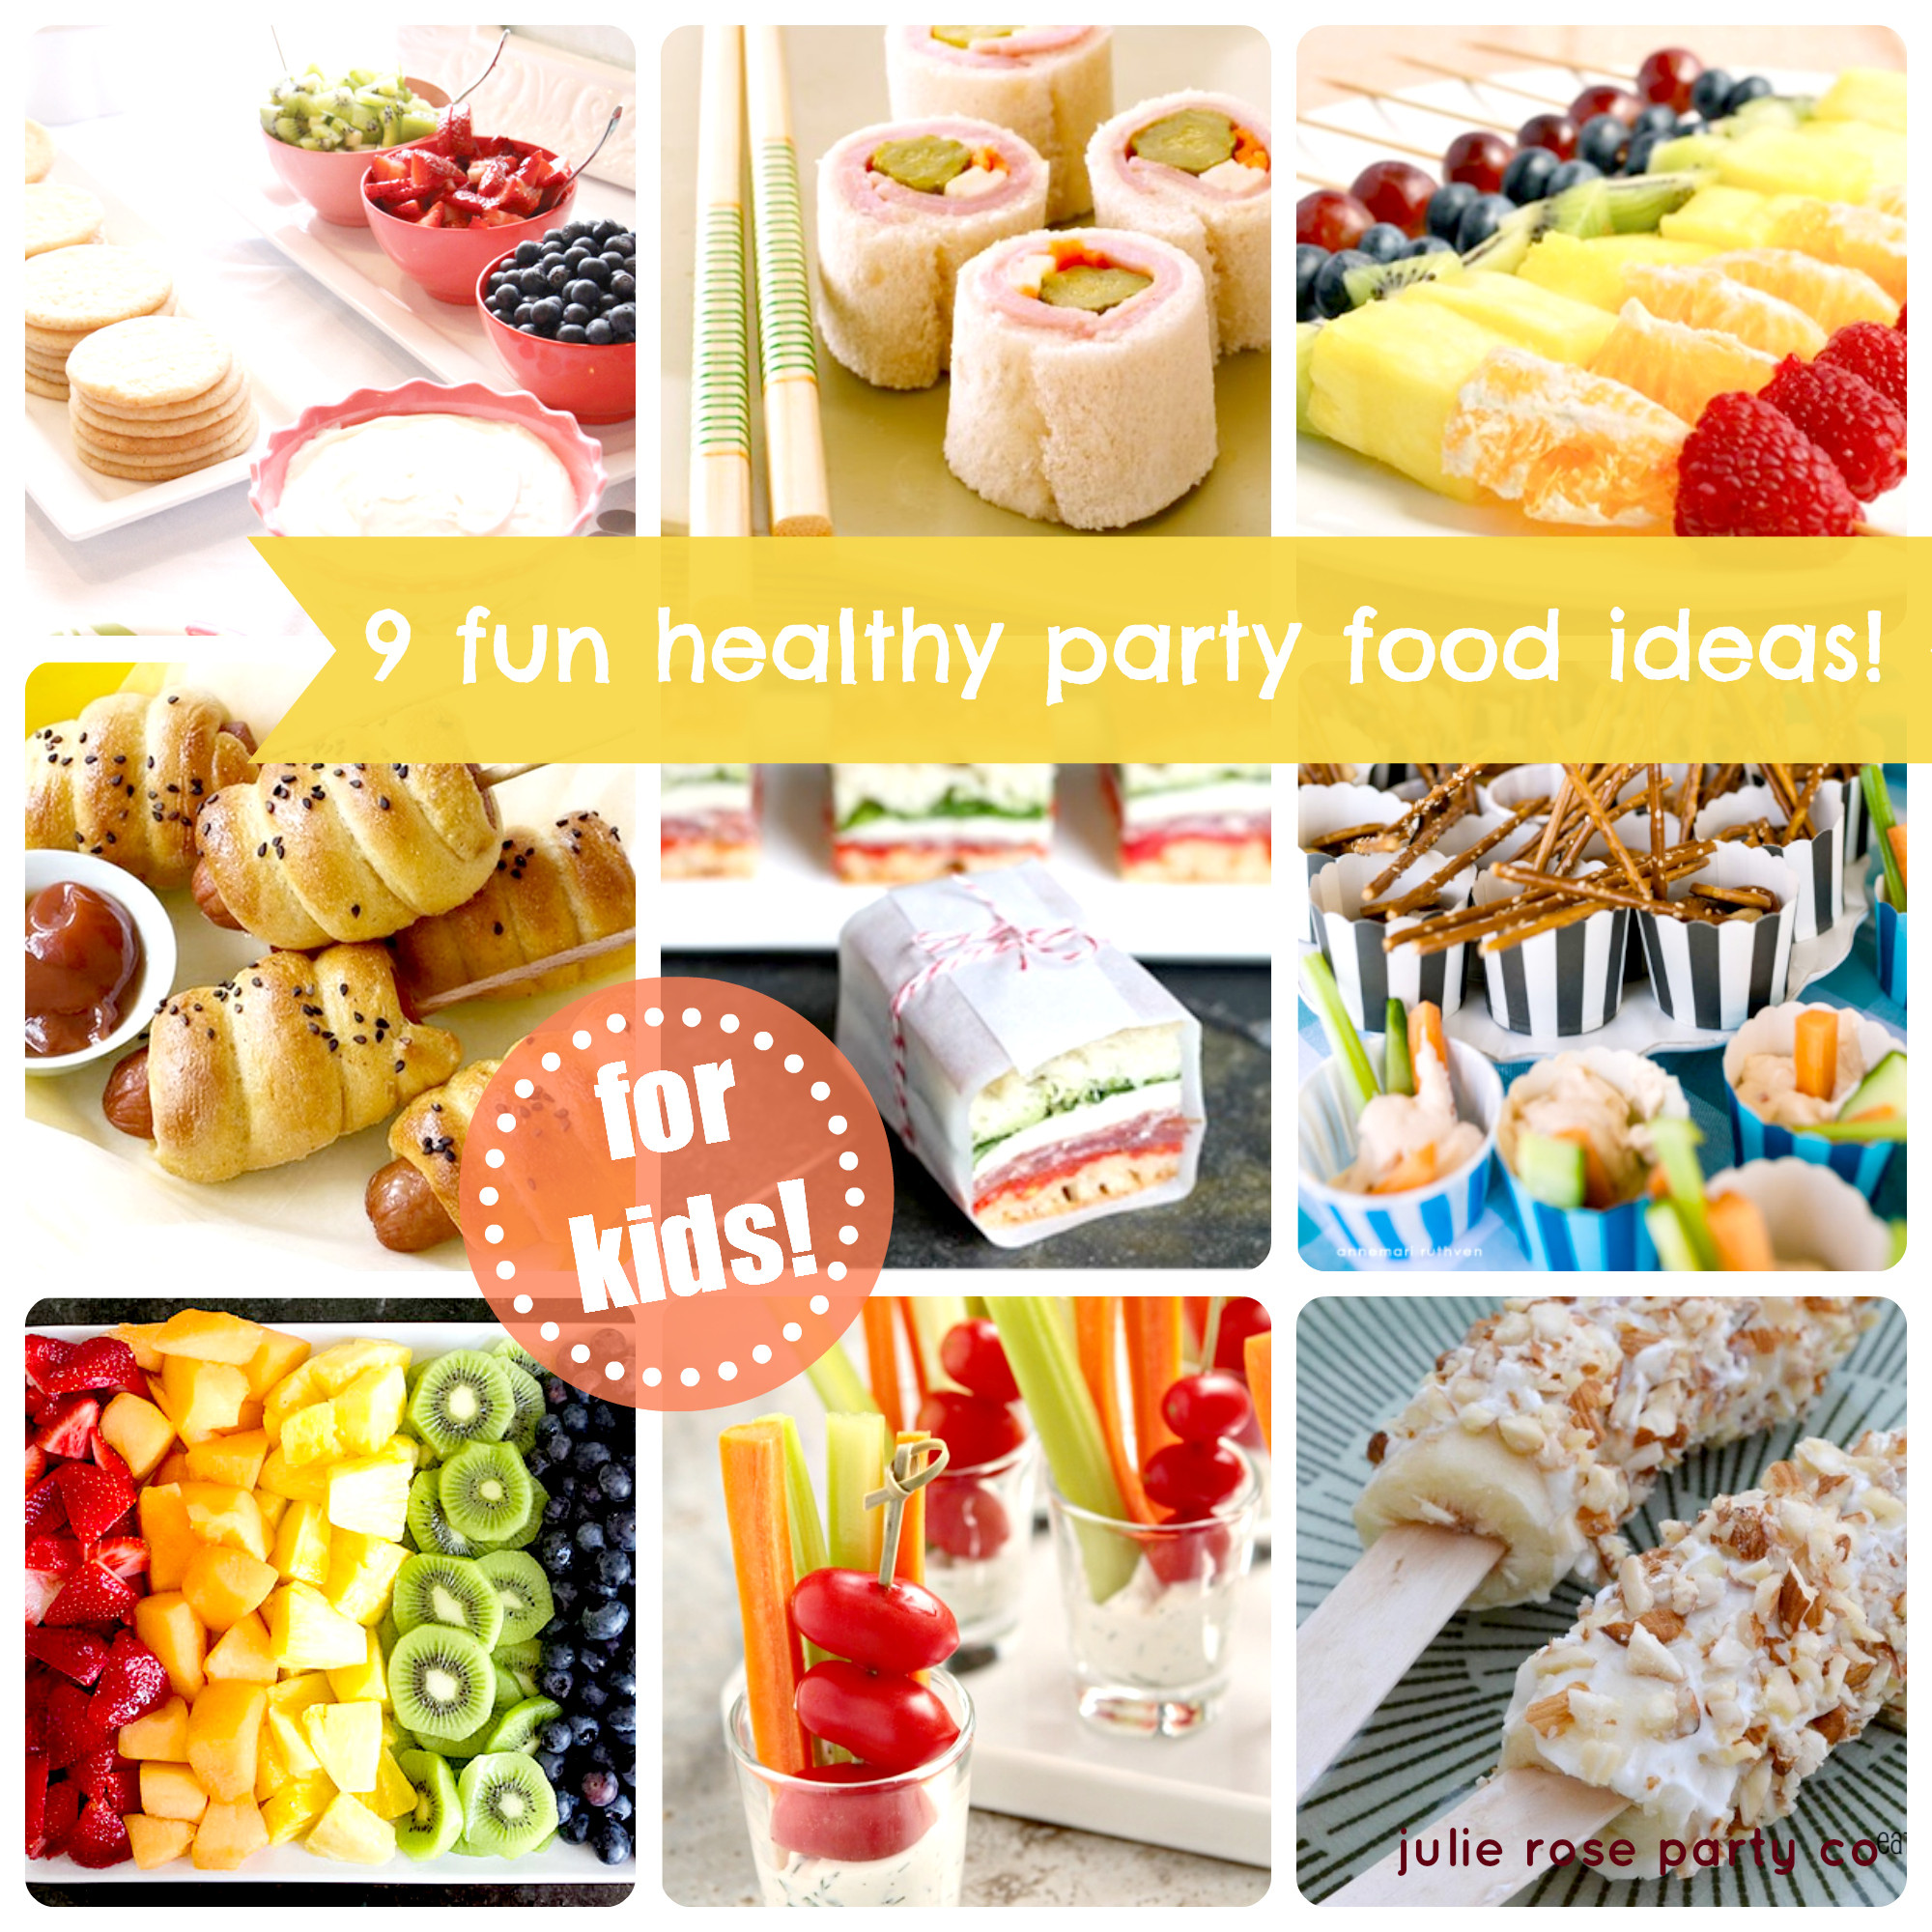 Party Food Ideas For Teenagers  9 fun and healthy party food ideas kids